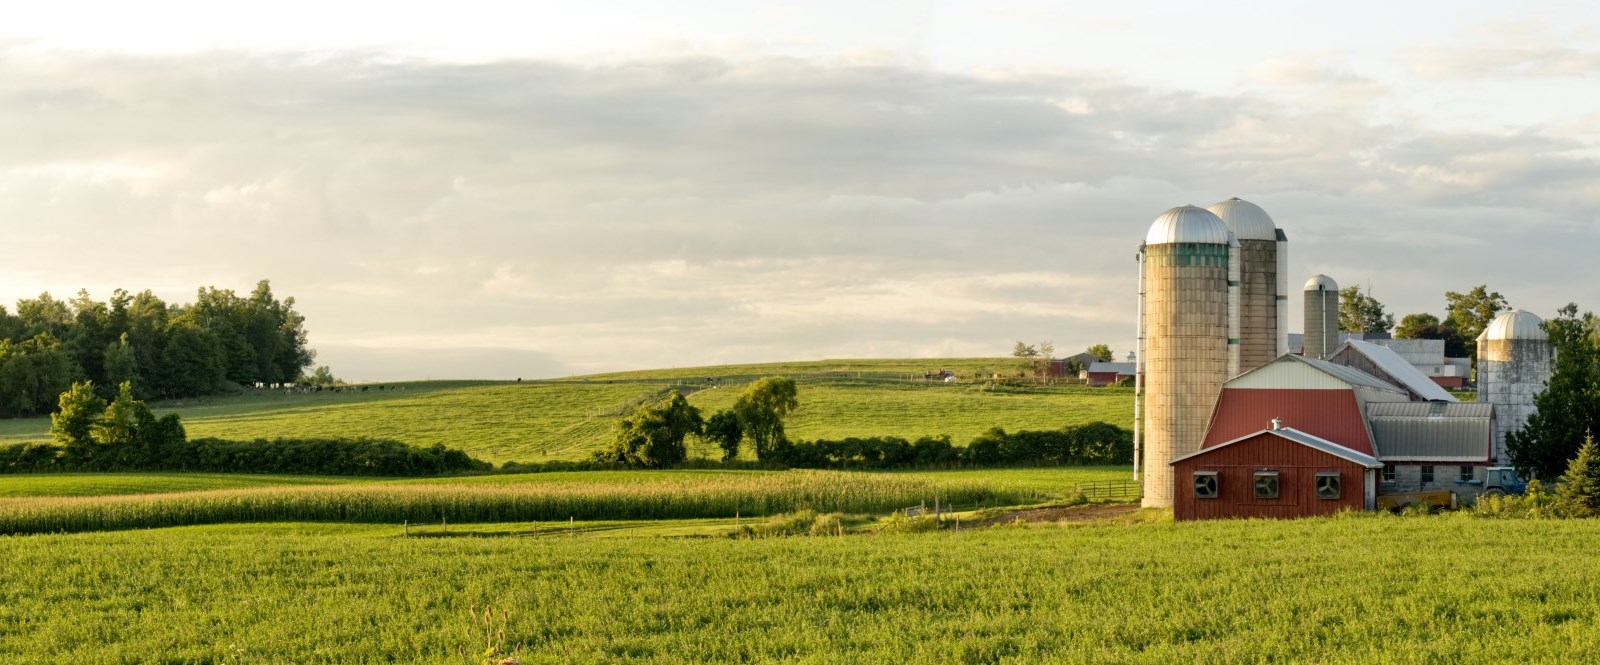 view of farmland and barn